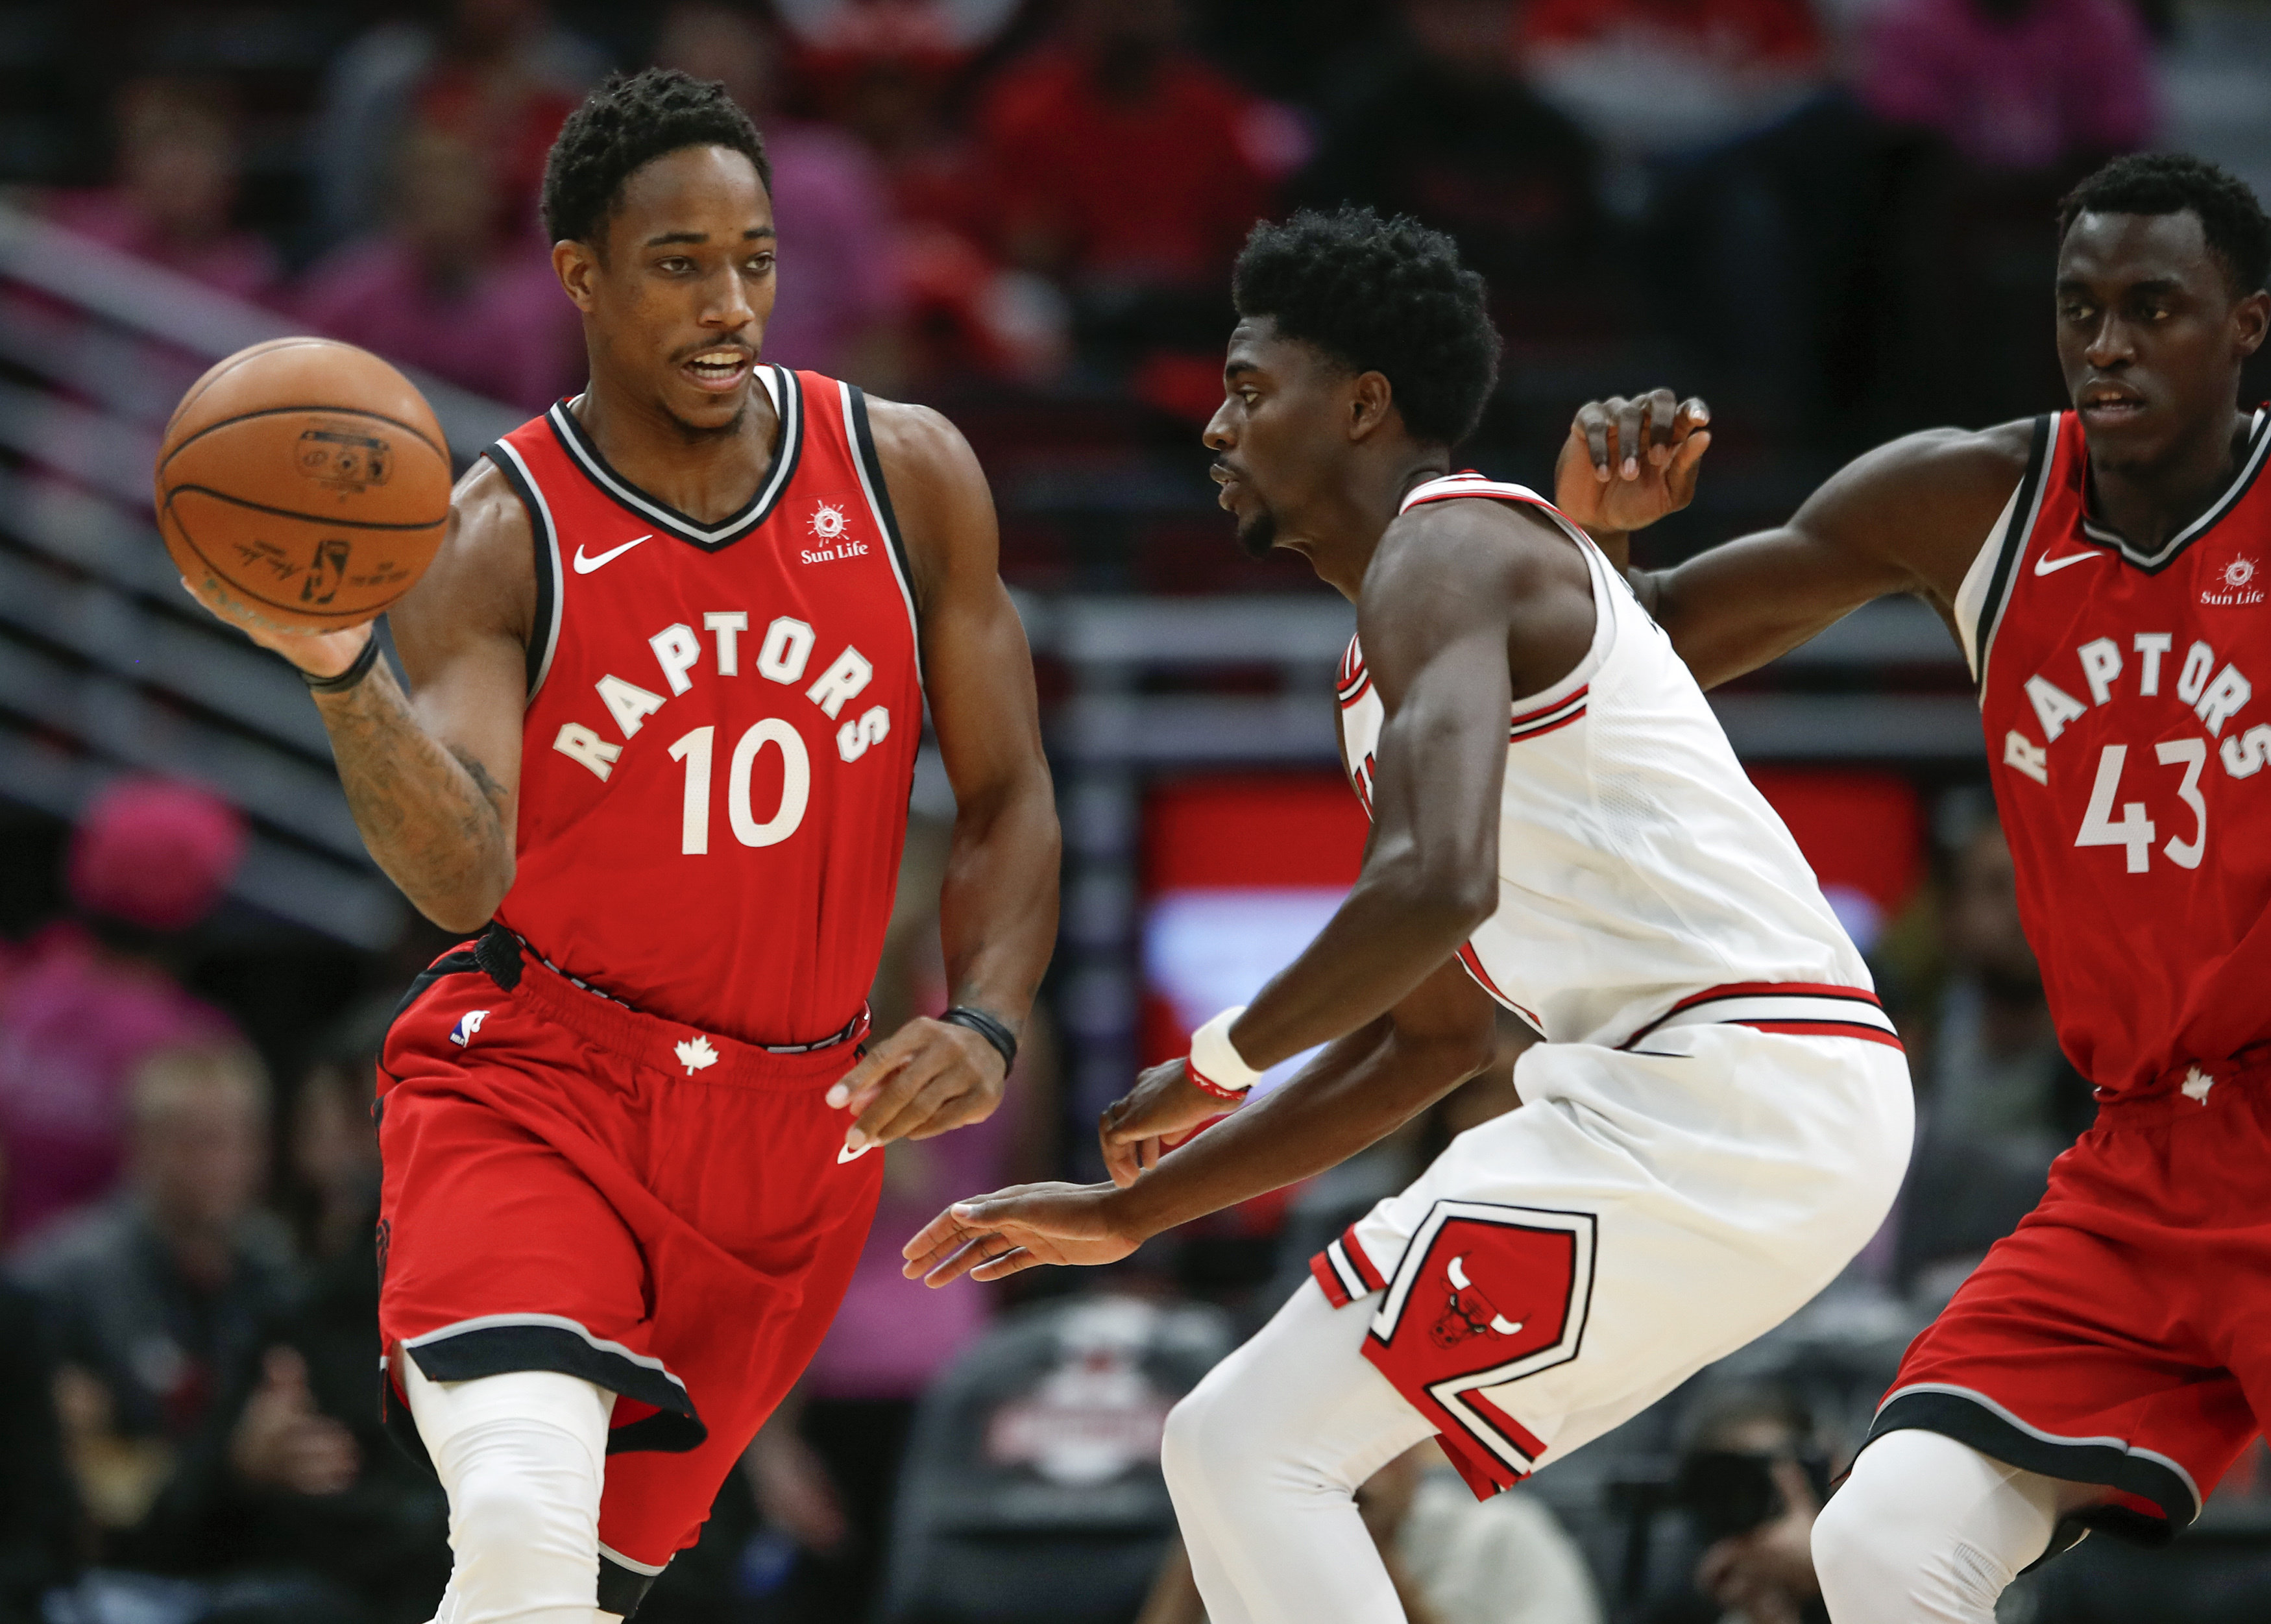 October 14, 2017 - Chicago, ILLINOIS, Estados Unidos - Toronto Raptors guard DeMar DeRozan (10) is defended by Chicago Bulls guard Justin Holiday (7) during the first half of a preseason NBA basketball game at the United Center in Chicago, Illinois, USA, 13 October 2017. (Credit Image: © Kamil Krzaczynski/EFE via ZUMA Press)